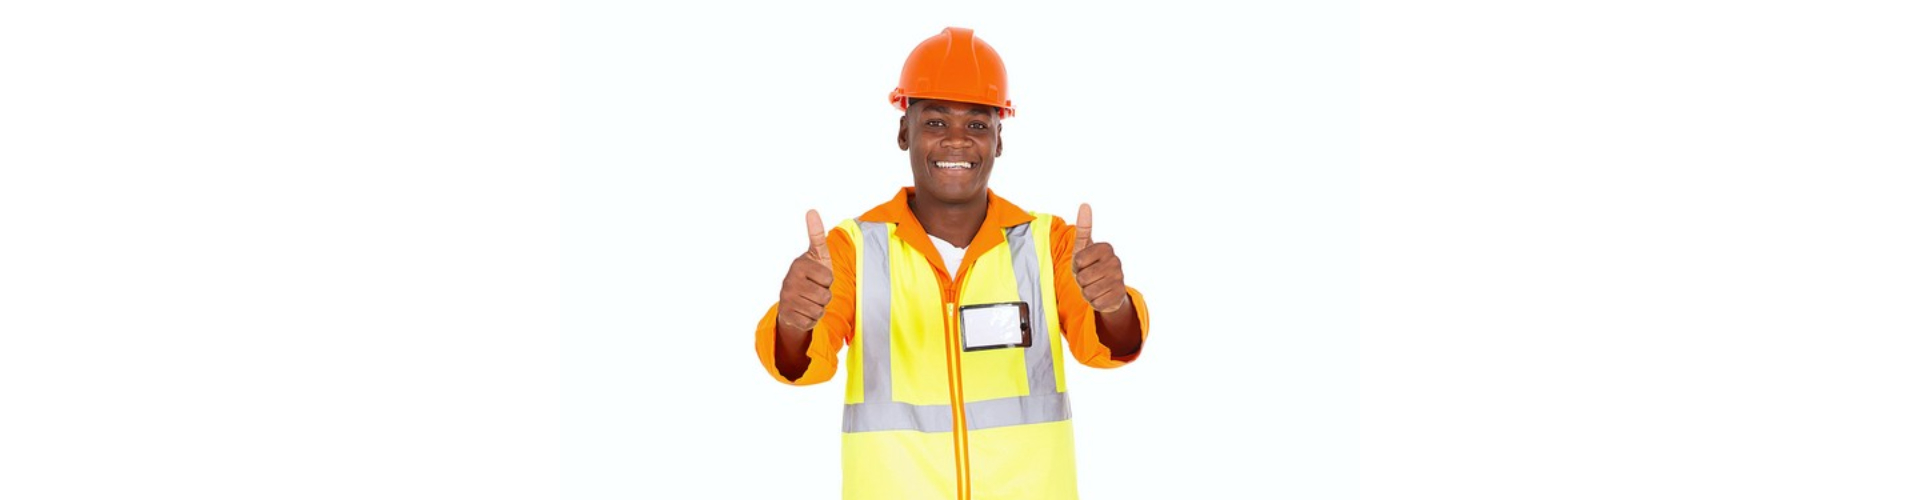 construction worker smiling at the camera